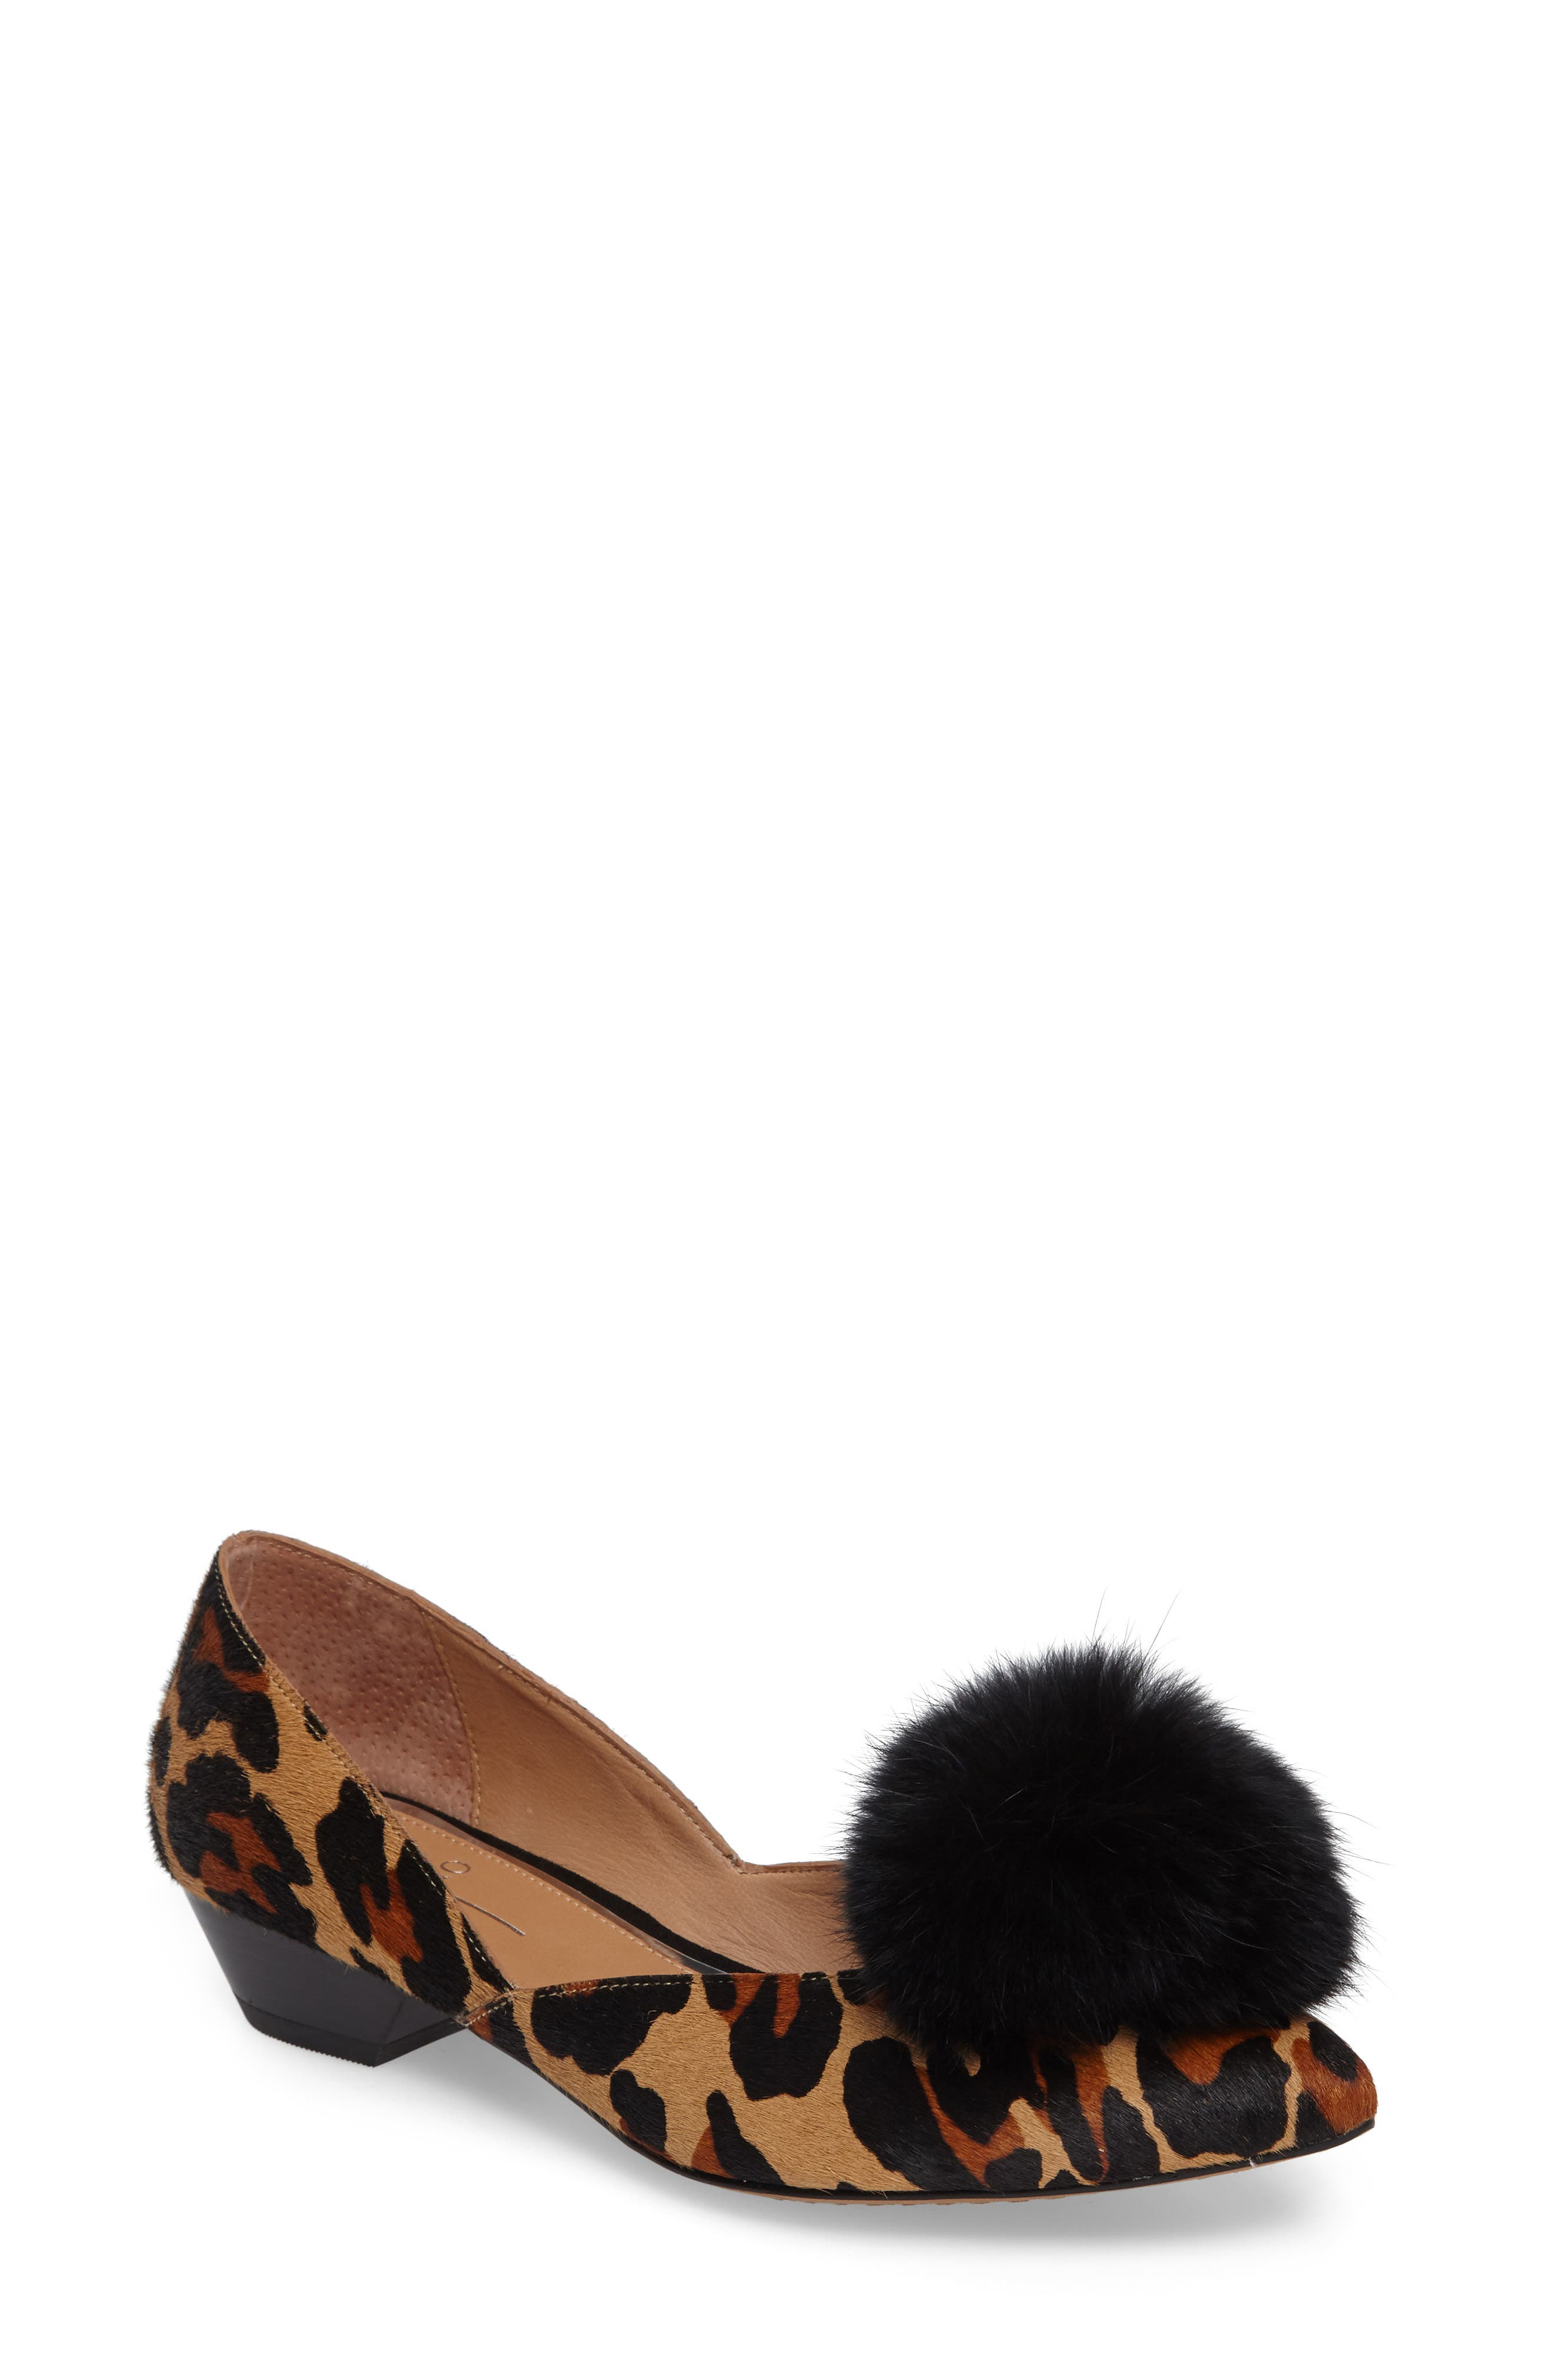 Camille II Genuine Calf Hair d'Orsay Pump with Genuine Rabbit Fur Pompom,                         Main,                         color, 215